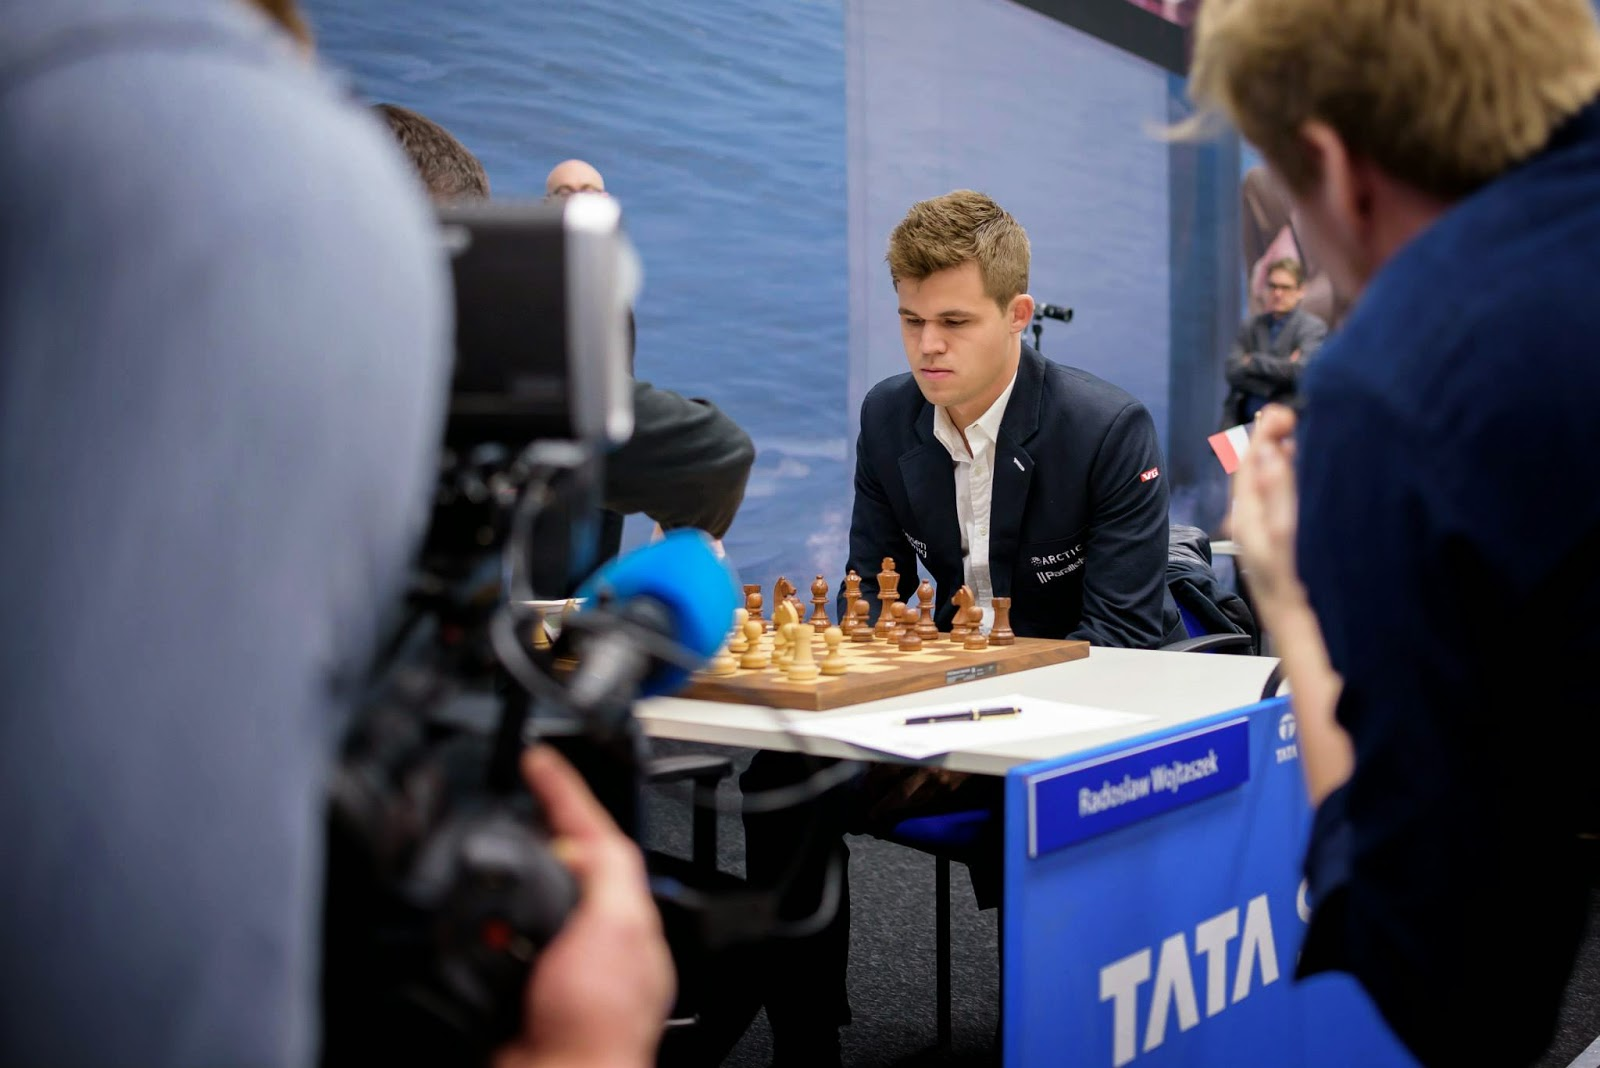 Magnus Carlsen en la tercera ronda del Tata Steel Chess Tournament